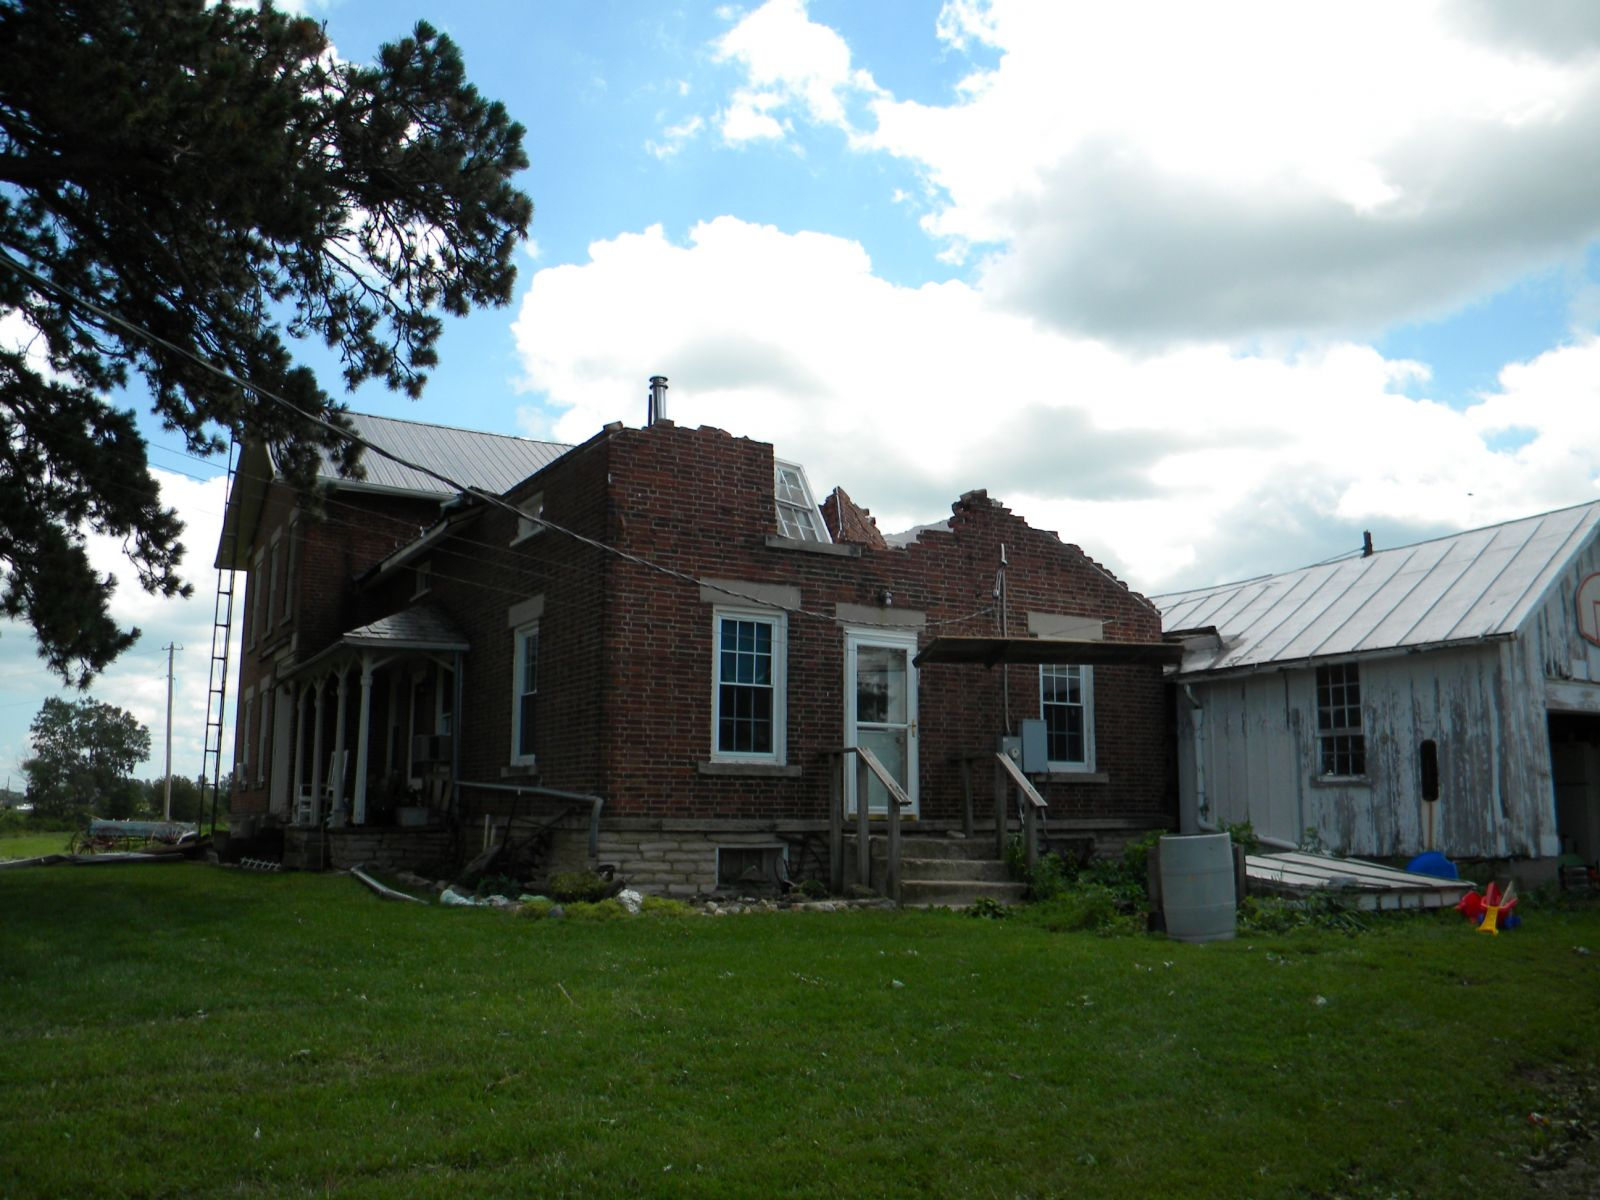 July 10, 2013 storm damage